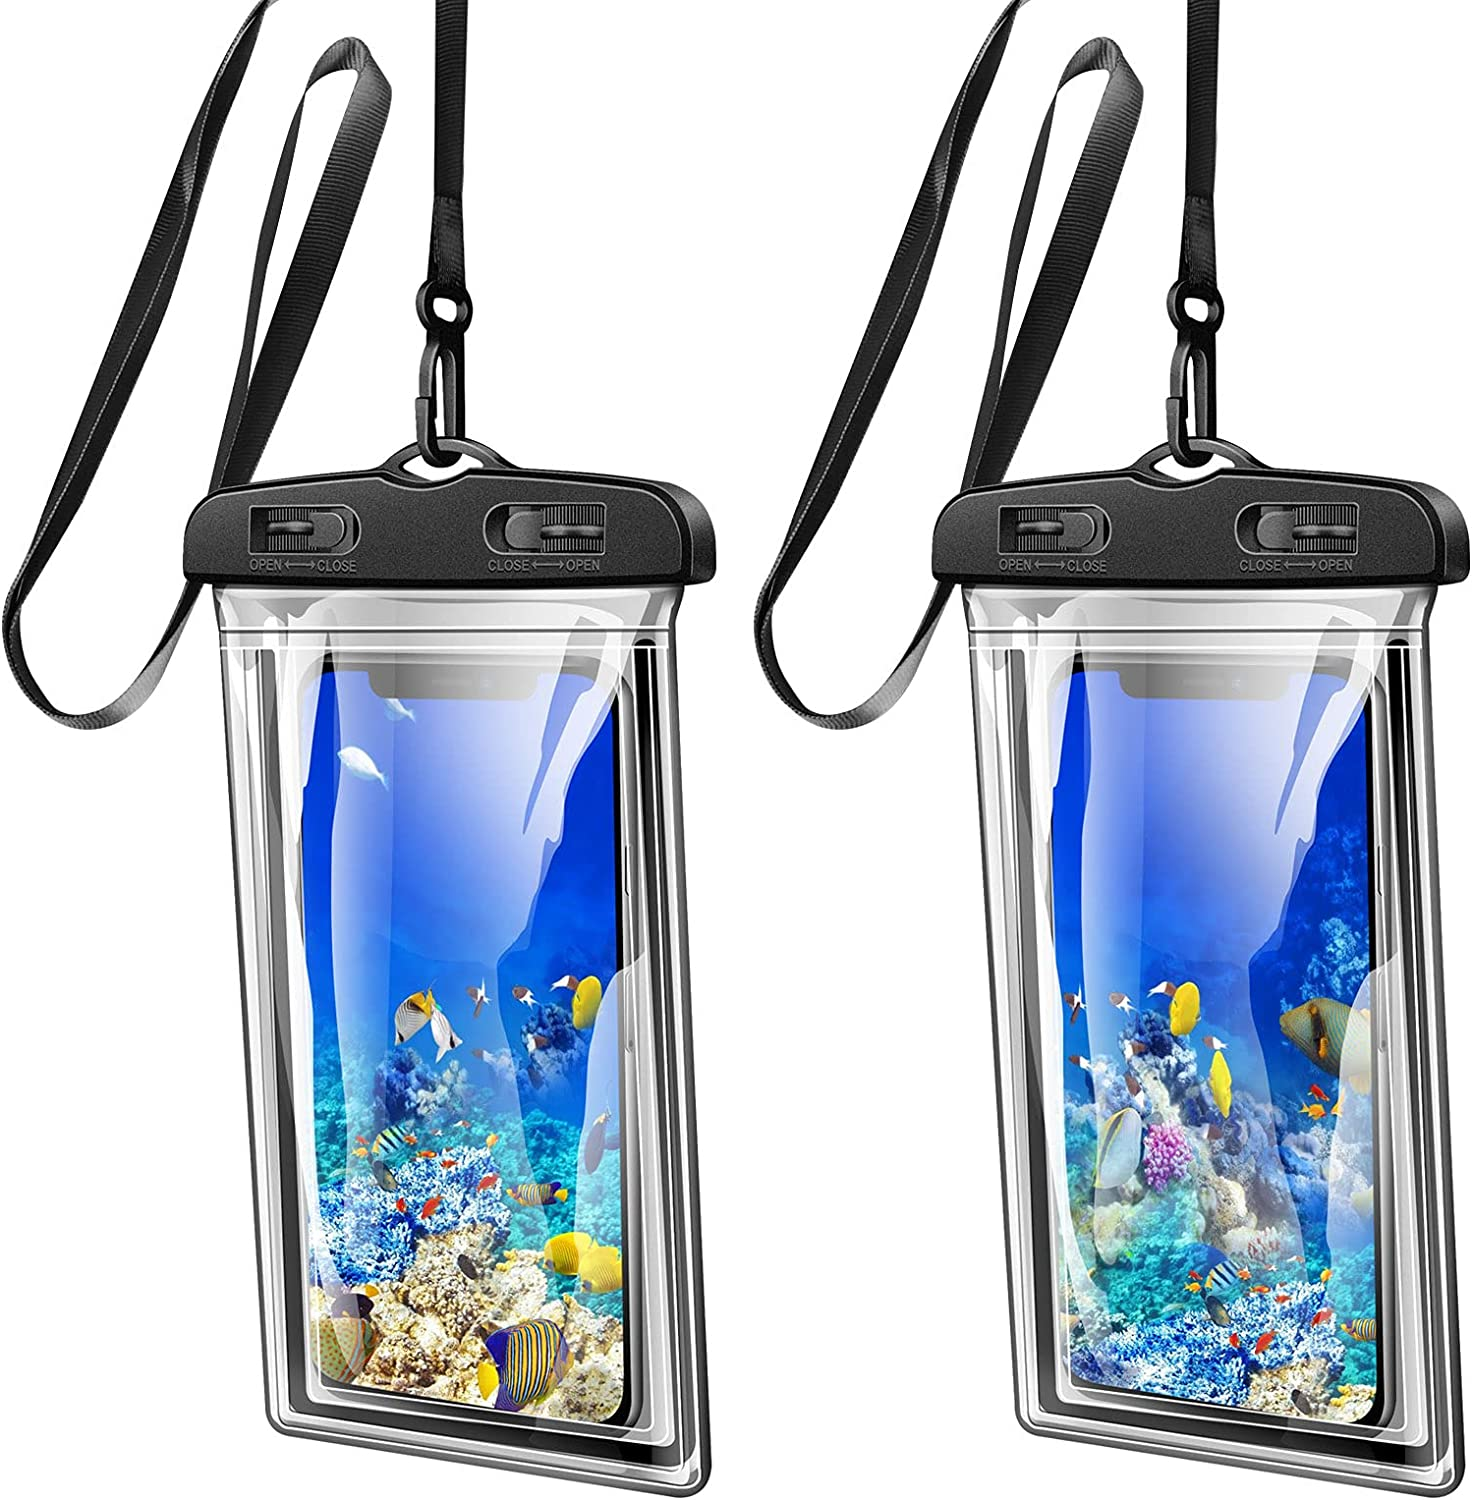 [2 Pack] Waterproof Phone Case Dry Bag Pouch, for Galaxy S20 Ultra S10 Plus S10 E S9 S8 Plus iPhone 12 Pro Max, Xs Max, XR, X, 8,7 Plus, 6S Plus, Note10 9 8 6 5, Pixel 4 XL 3 2